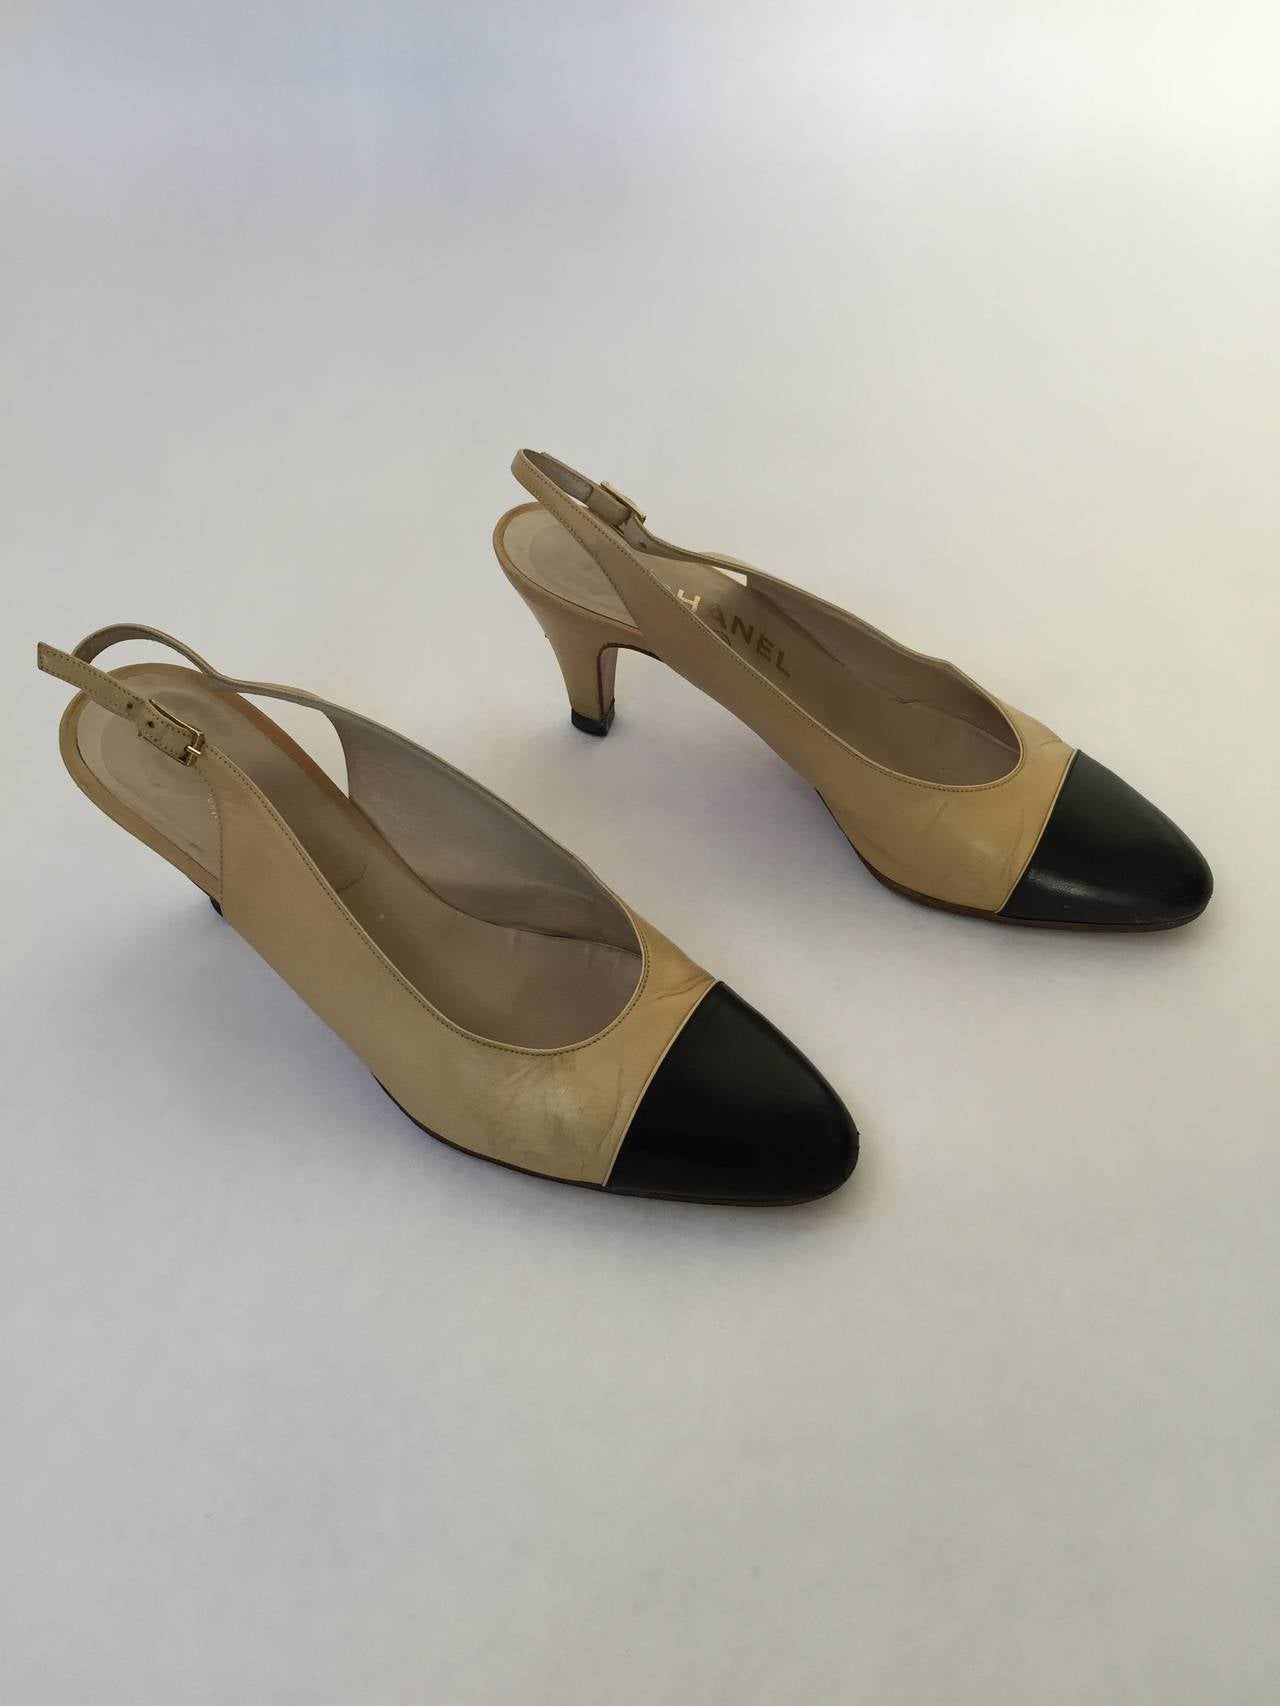 Chanel 1971 classic leather sling back heel original size 7.5 is today size 6.5.